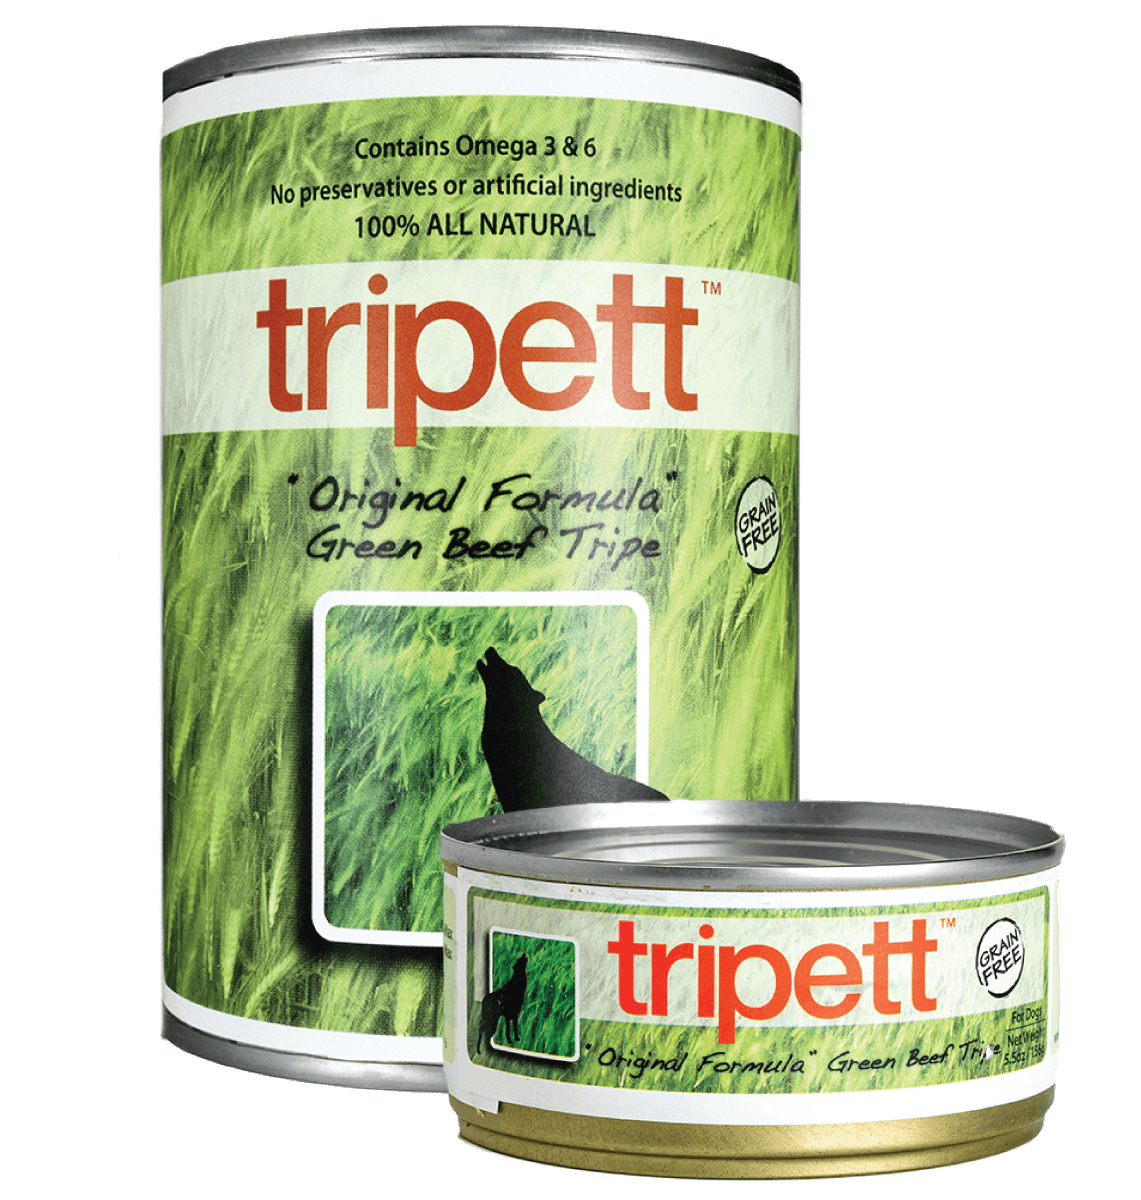 Tripett Green Beef Formula (12.8 oz and 5.5oz)